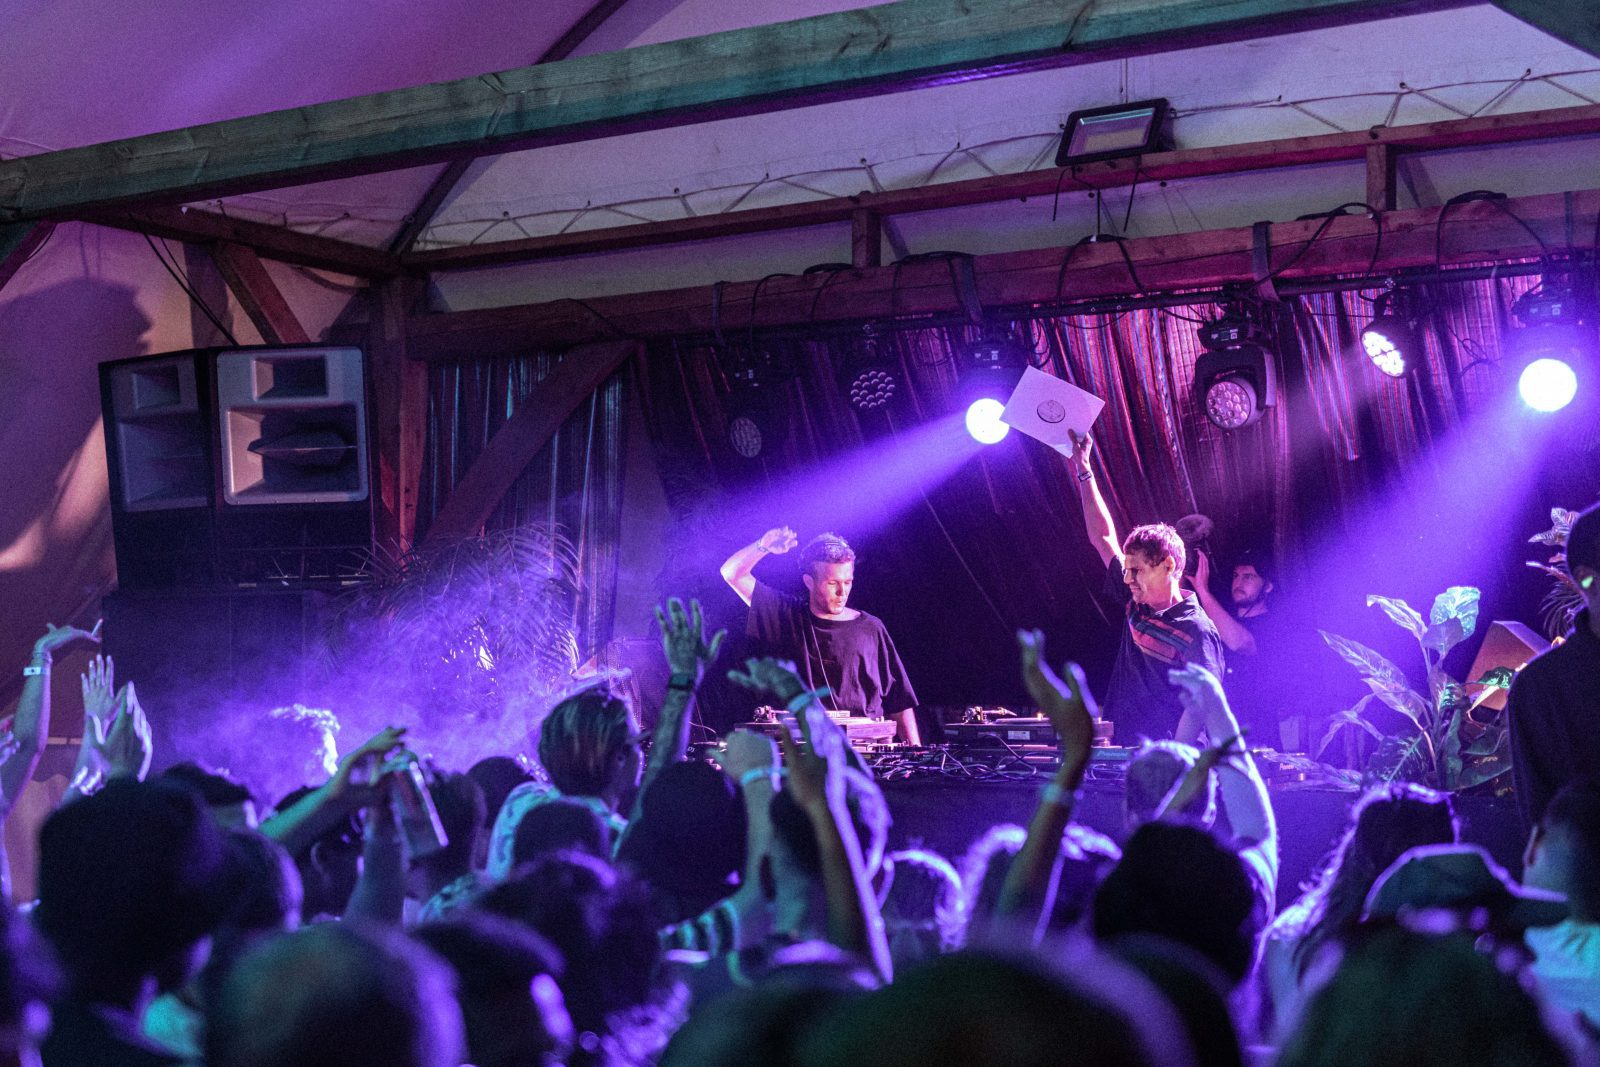 Review: Summer of Love Festival 2021, The Manc